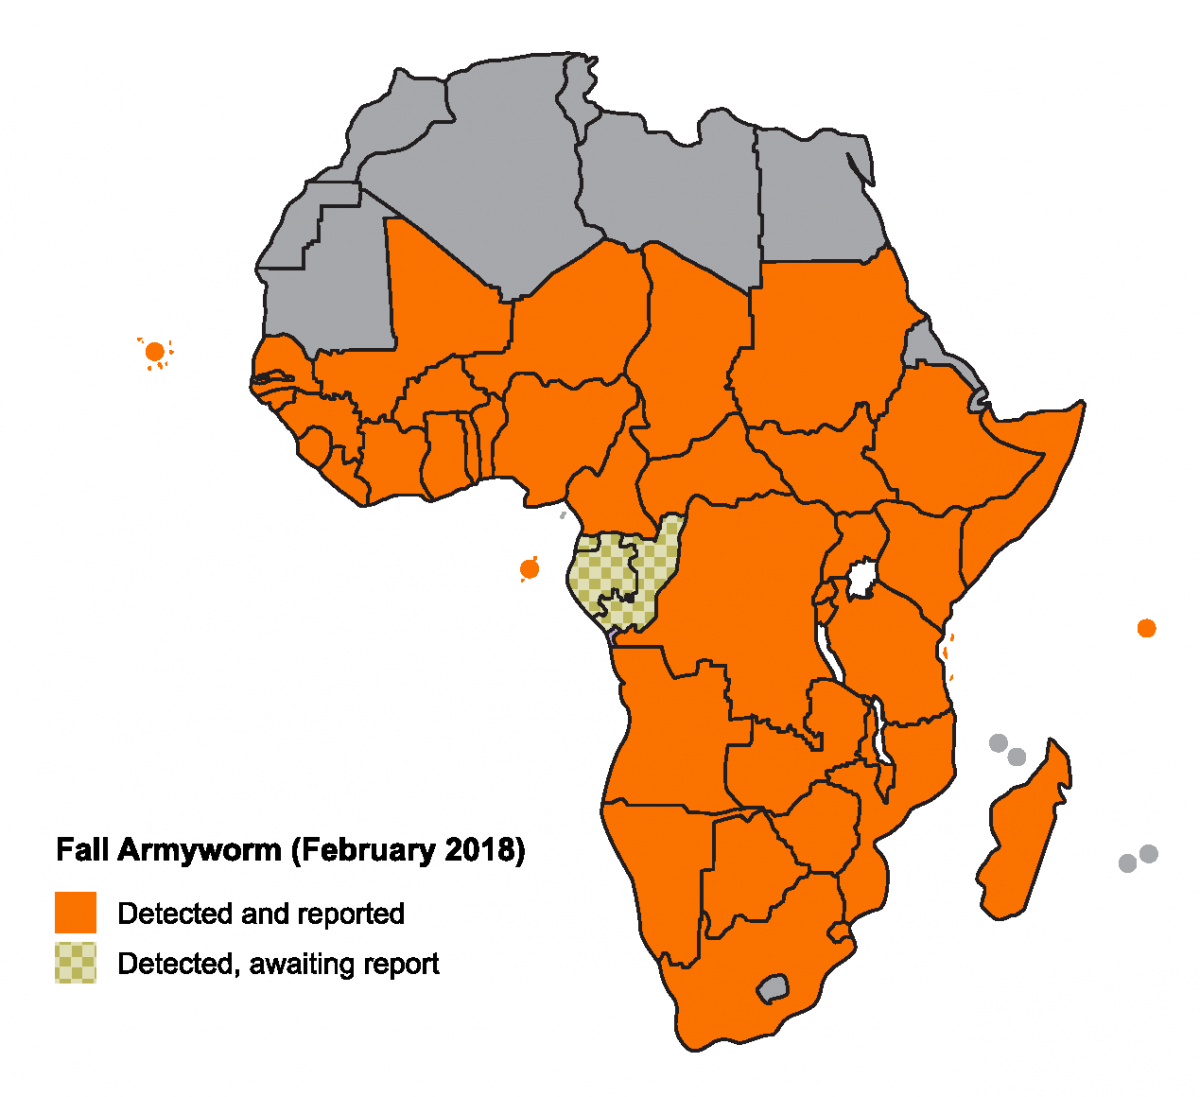 Map of Africa showing extent of fall armyworm